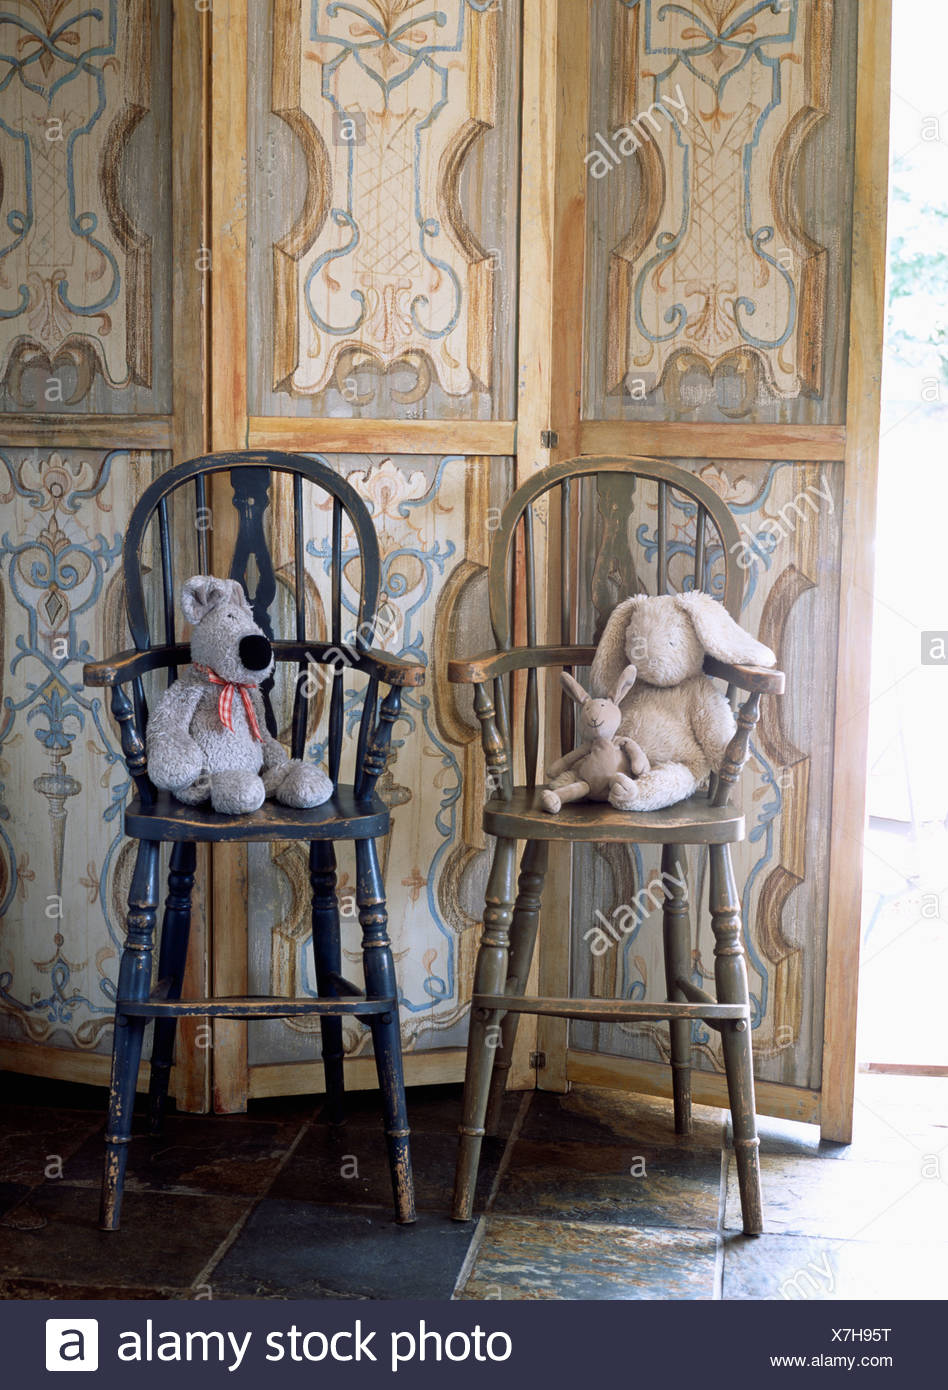 childrens chairs soft summer infant bentwood high chair close up of toy dog and rabbit on children s windsor against painted wooden screen